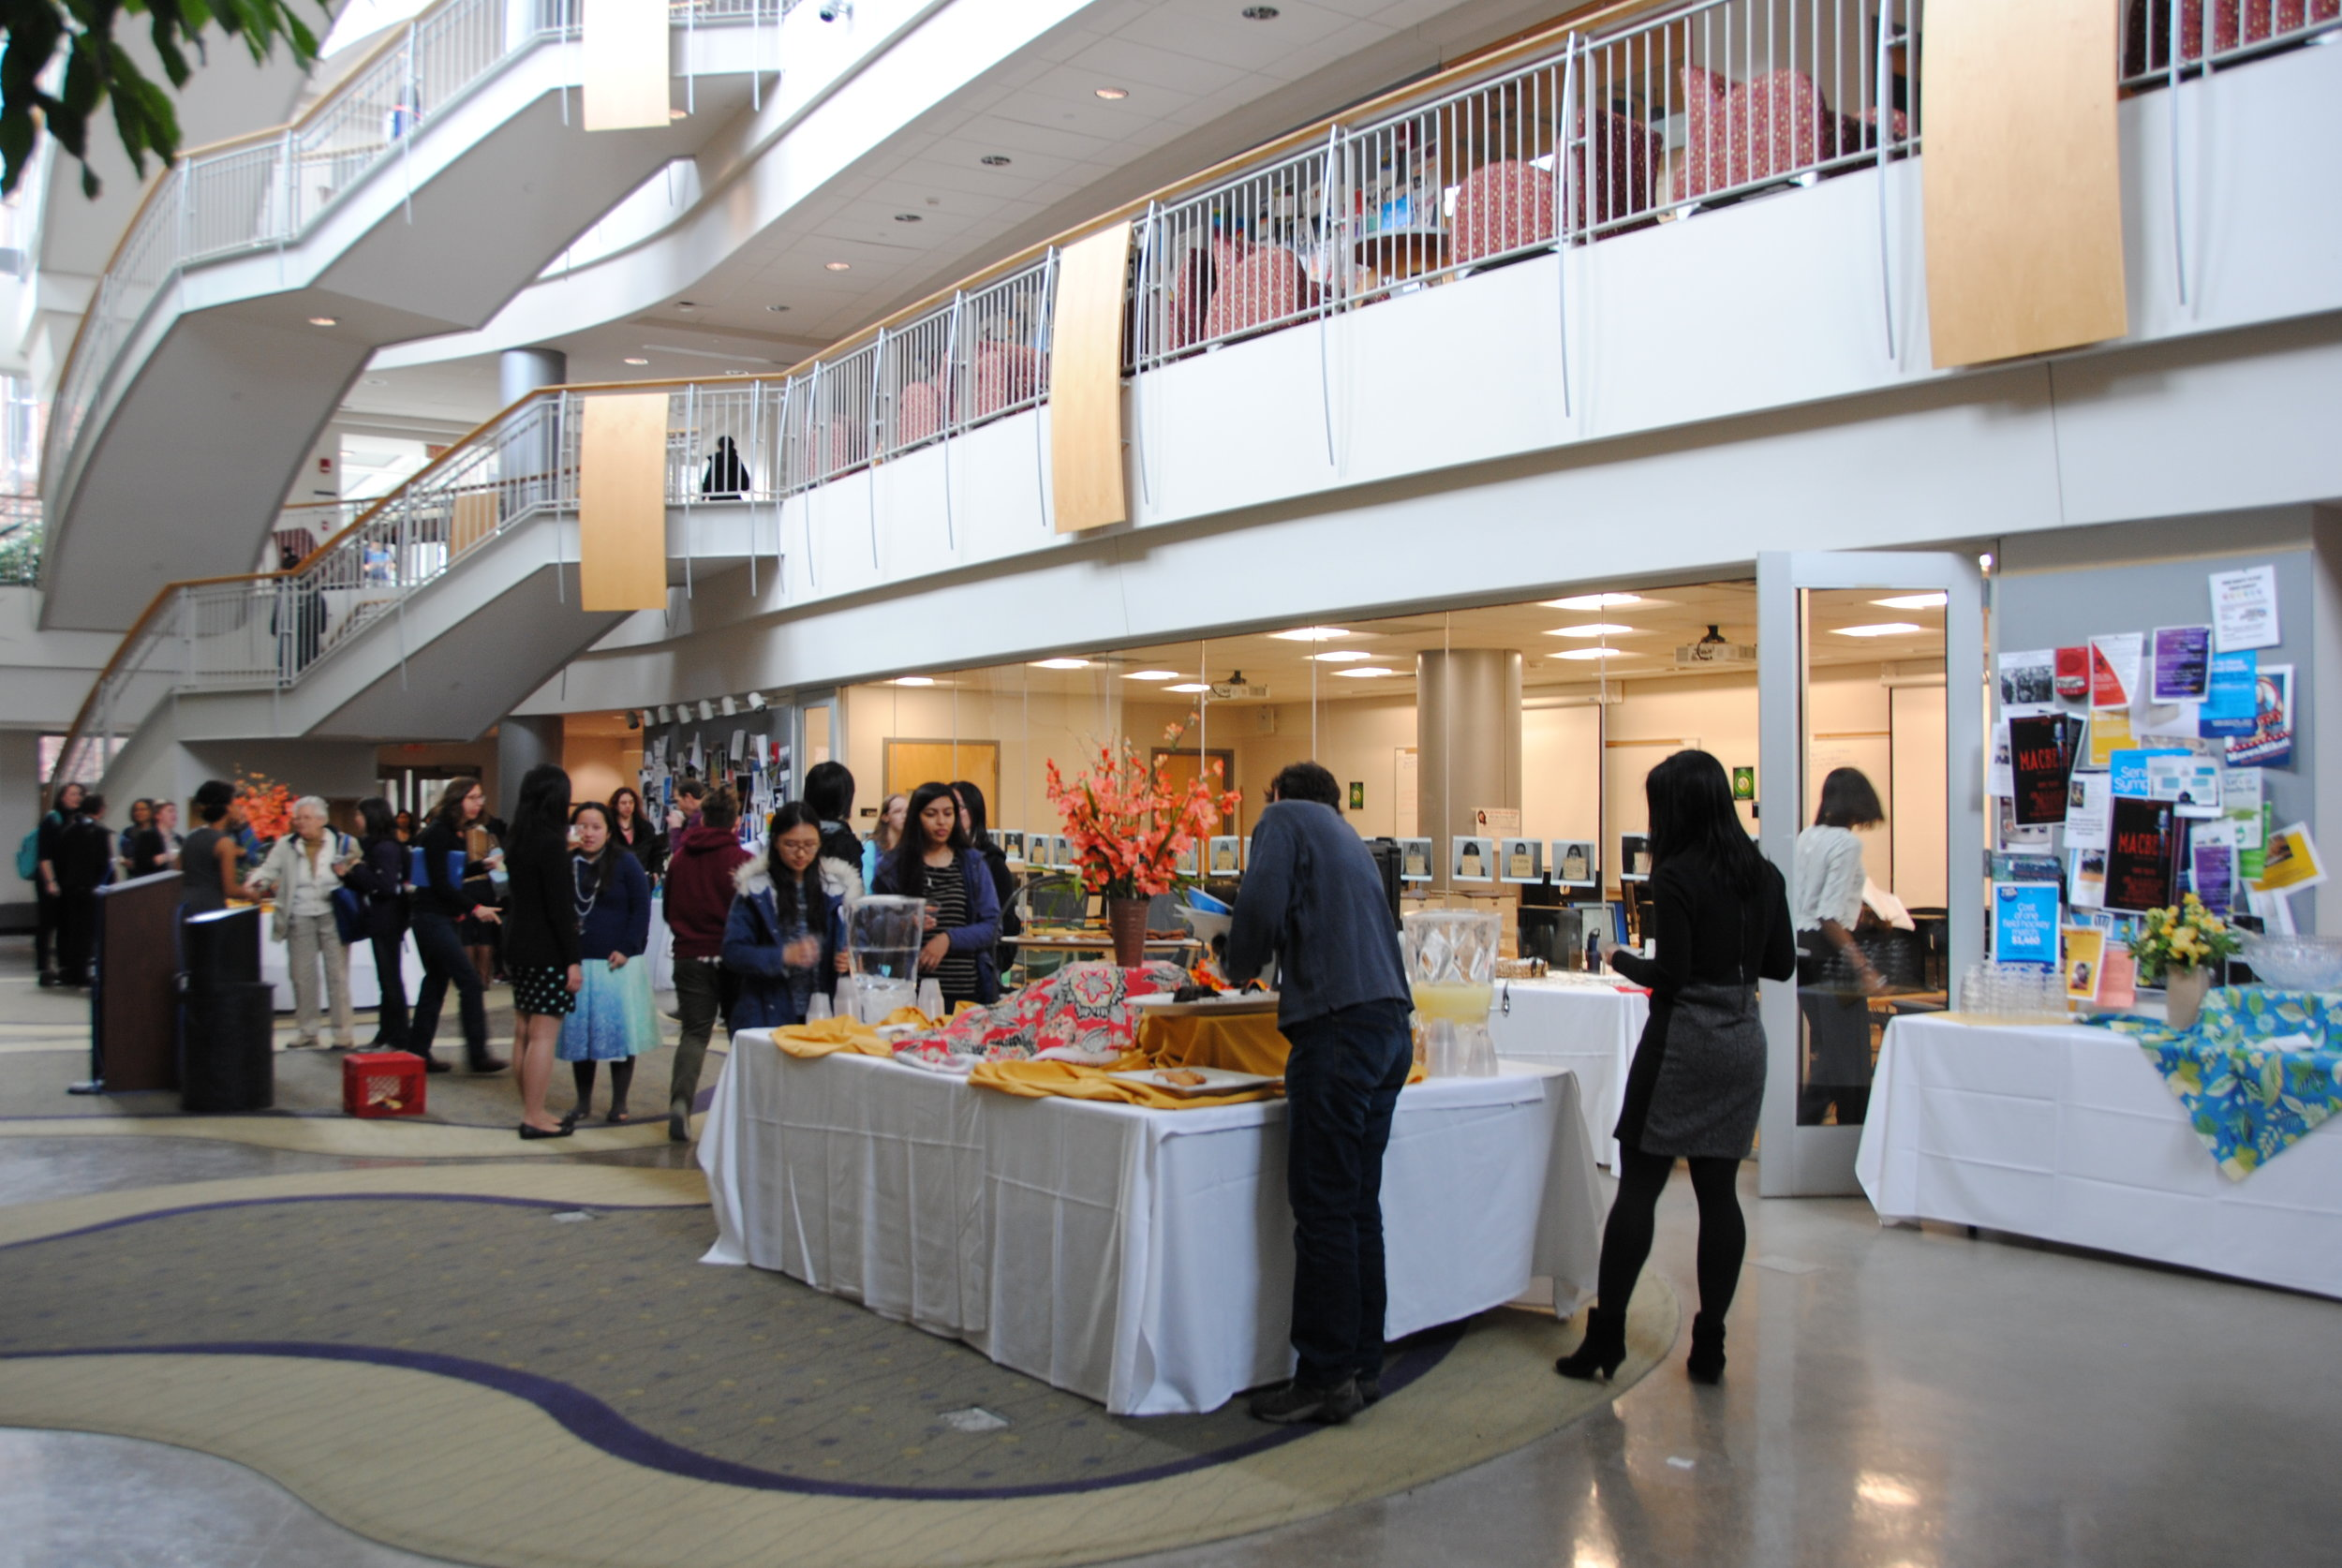 Photo by Ayla Safran '19  A reception was held in Kendade Atrium for presenters and attendees following the Senior Symposium presentations.